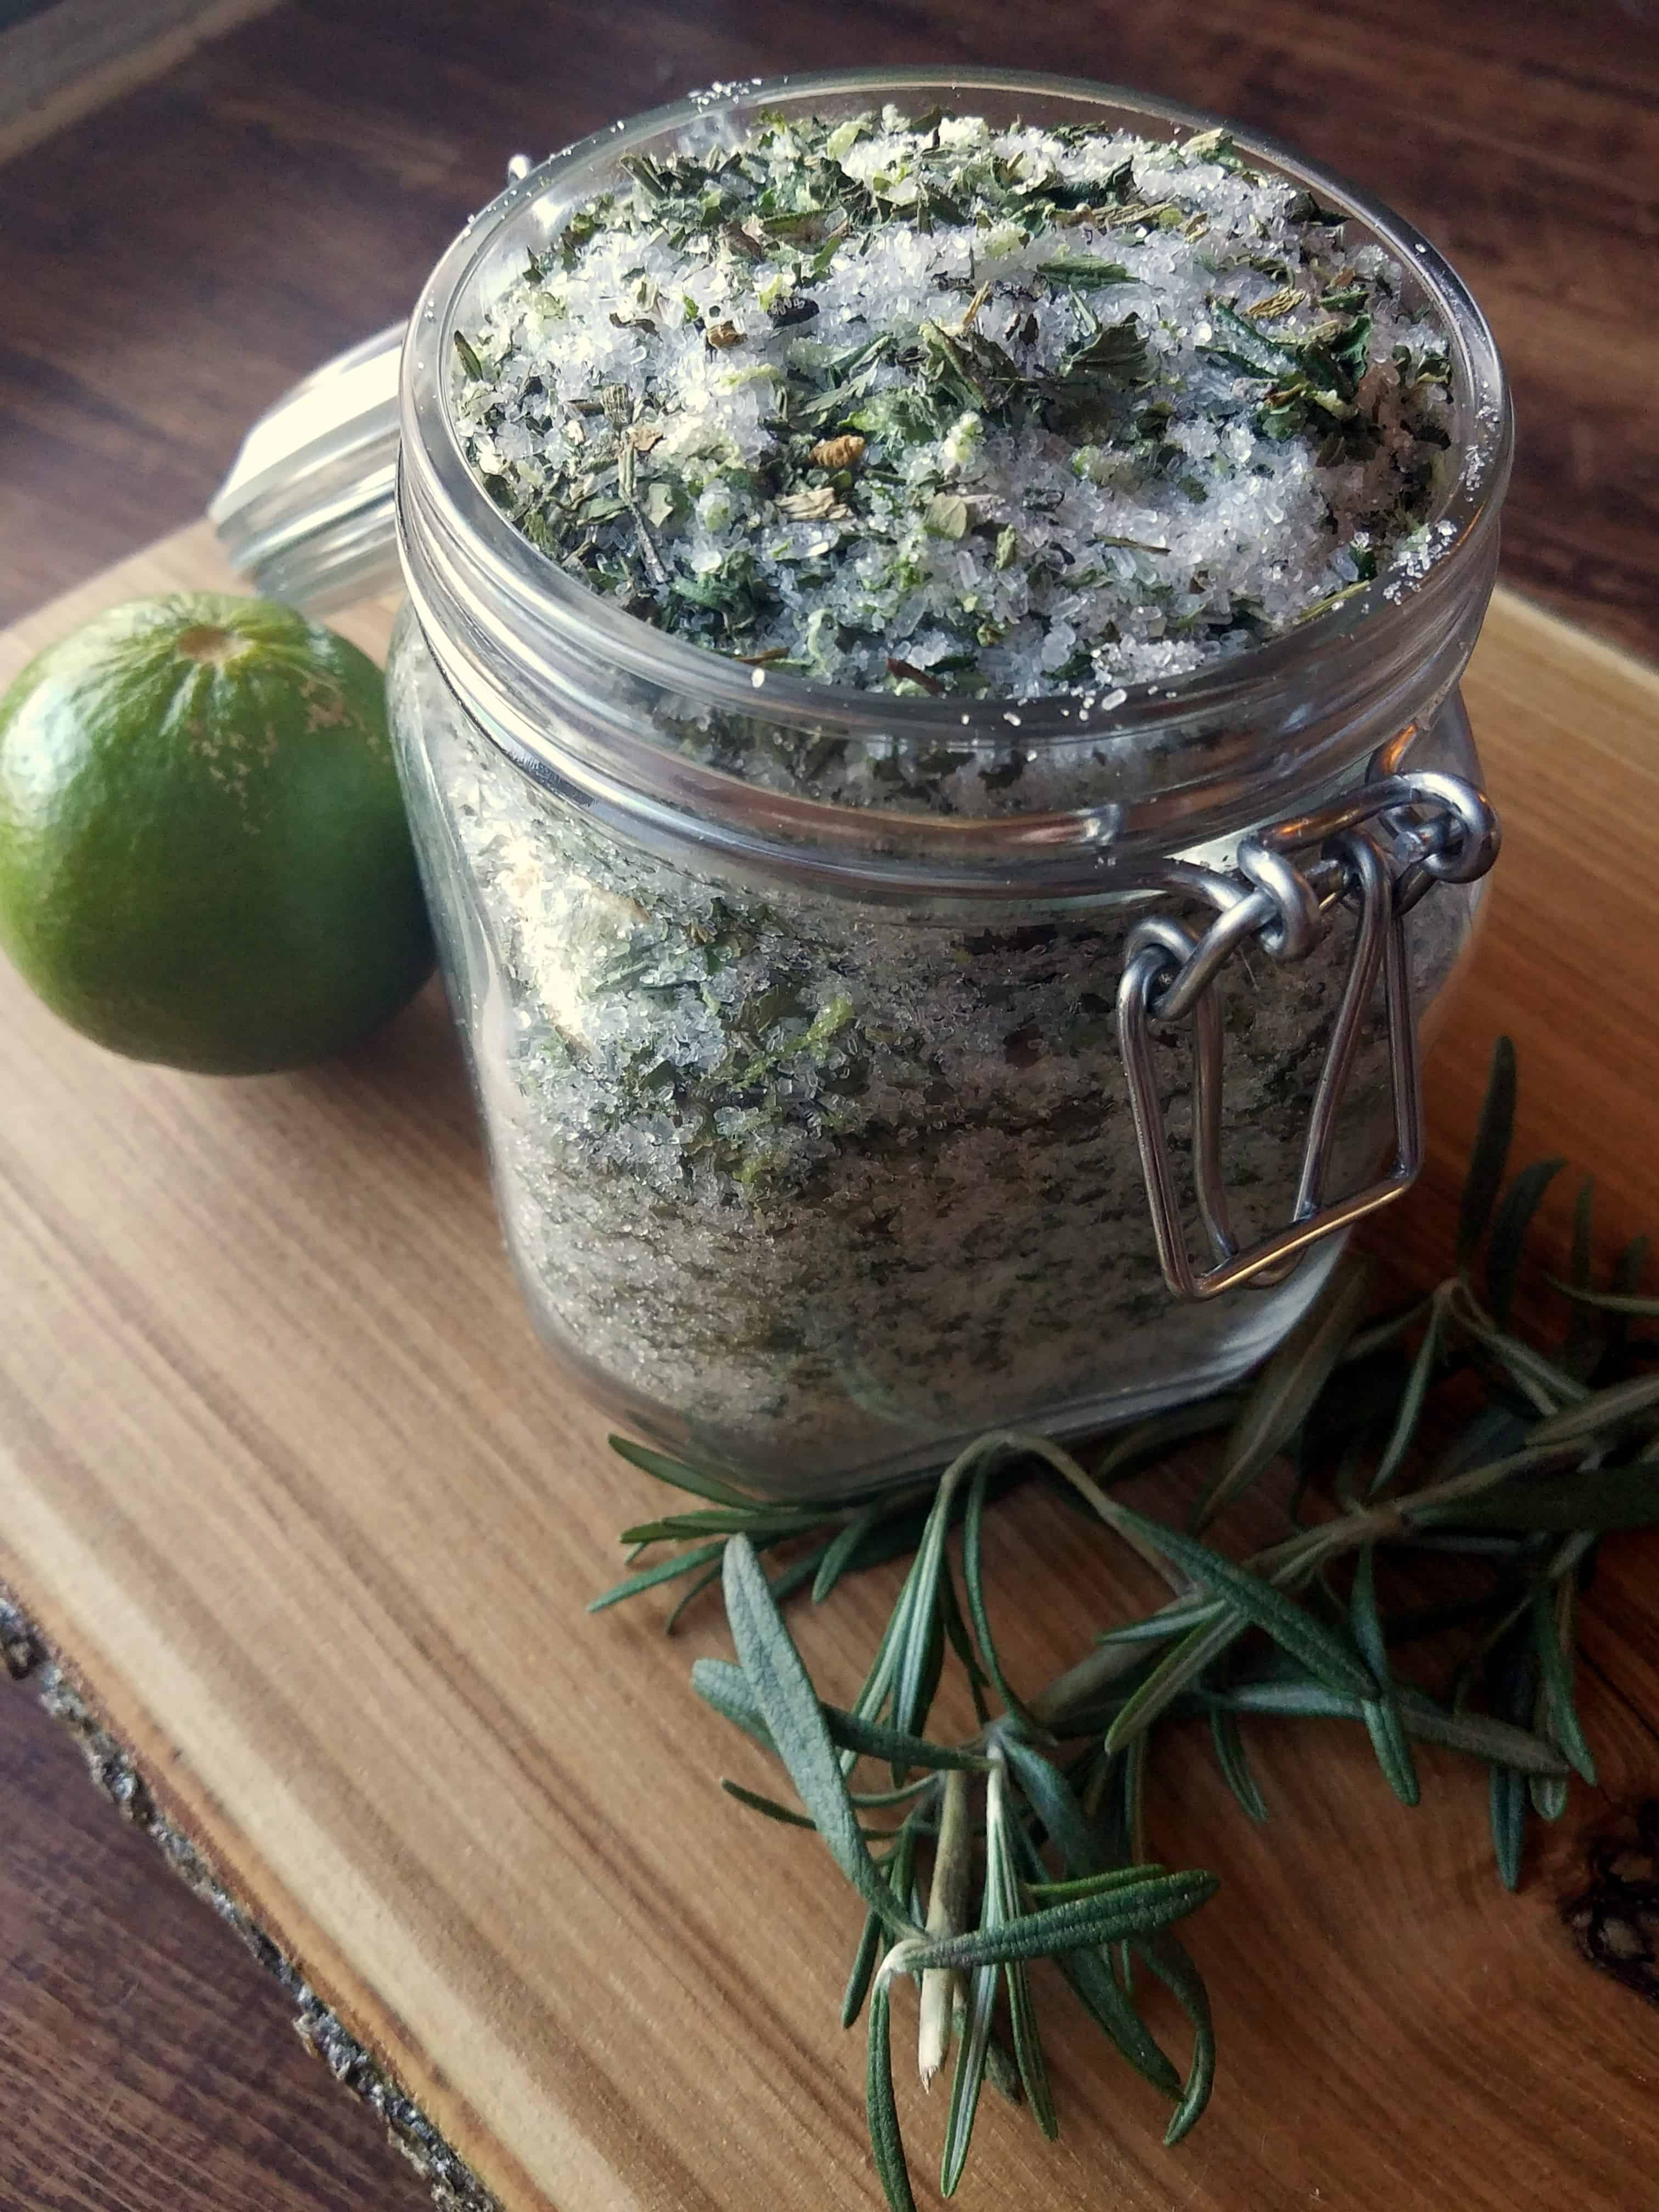 Rosemary and lime detox bath